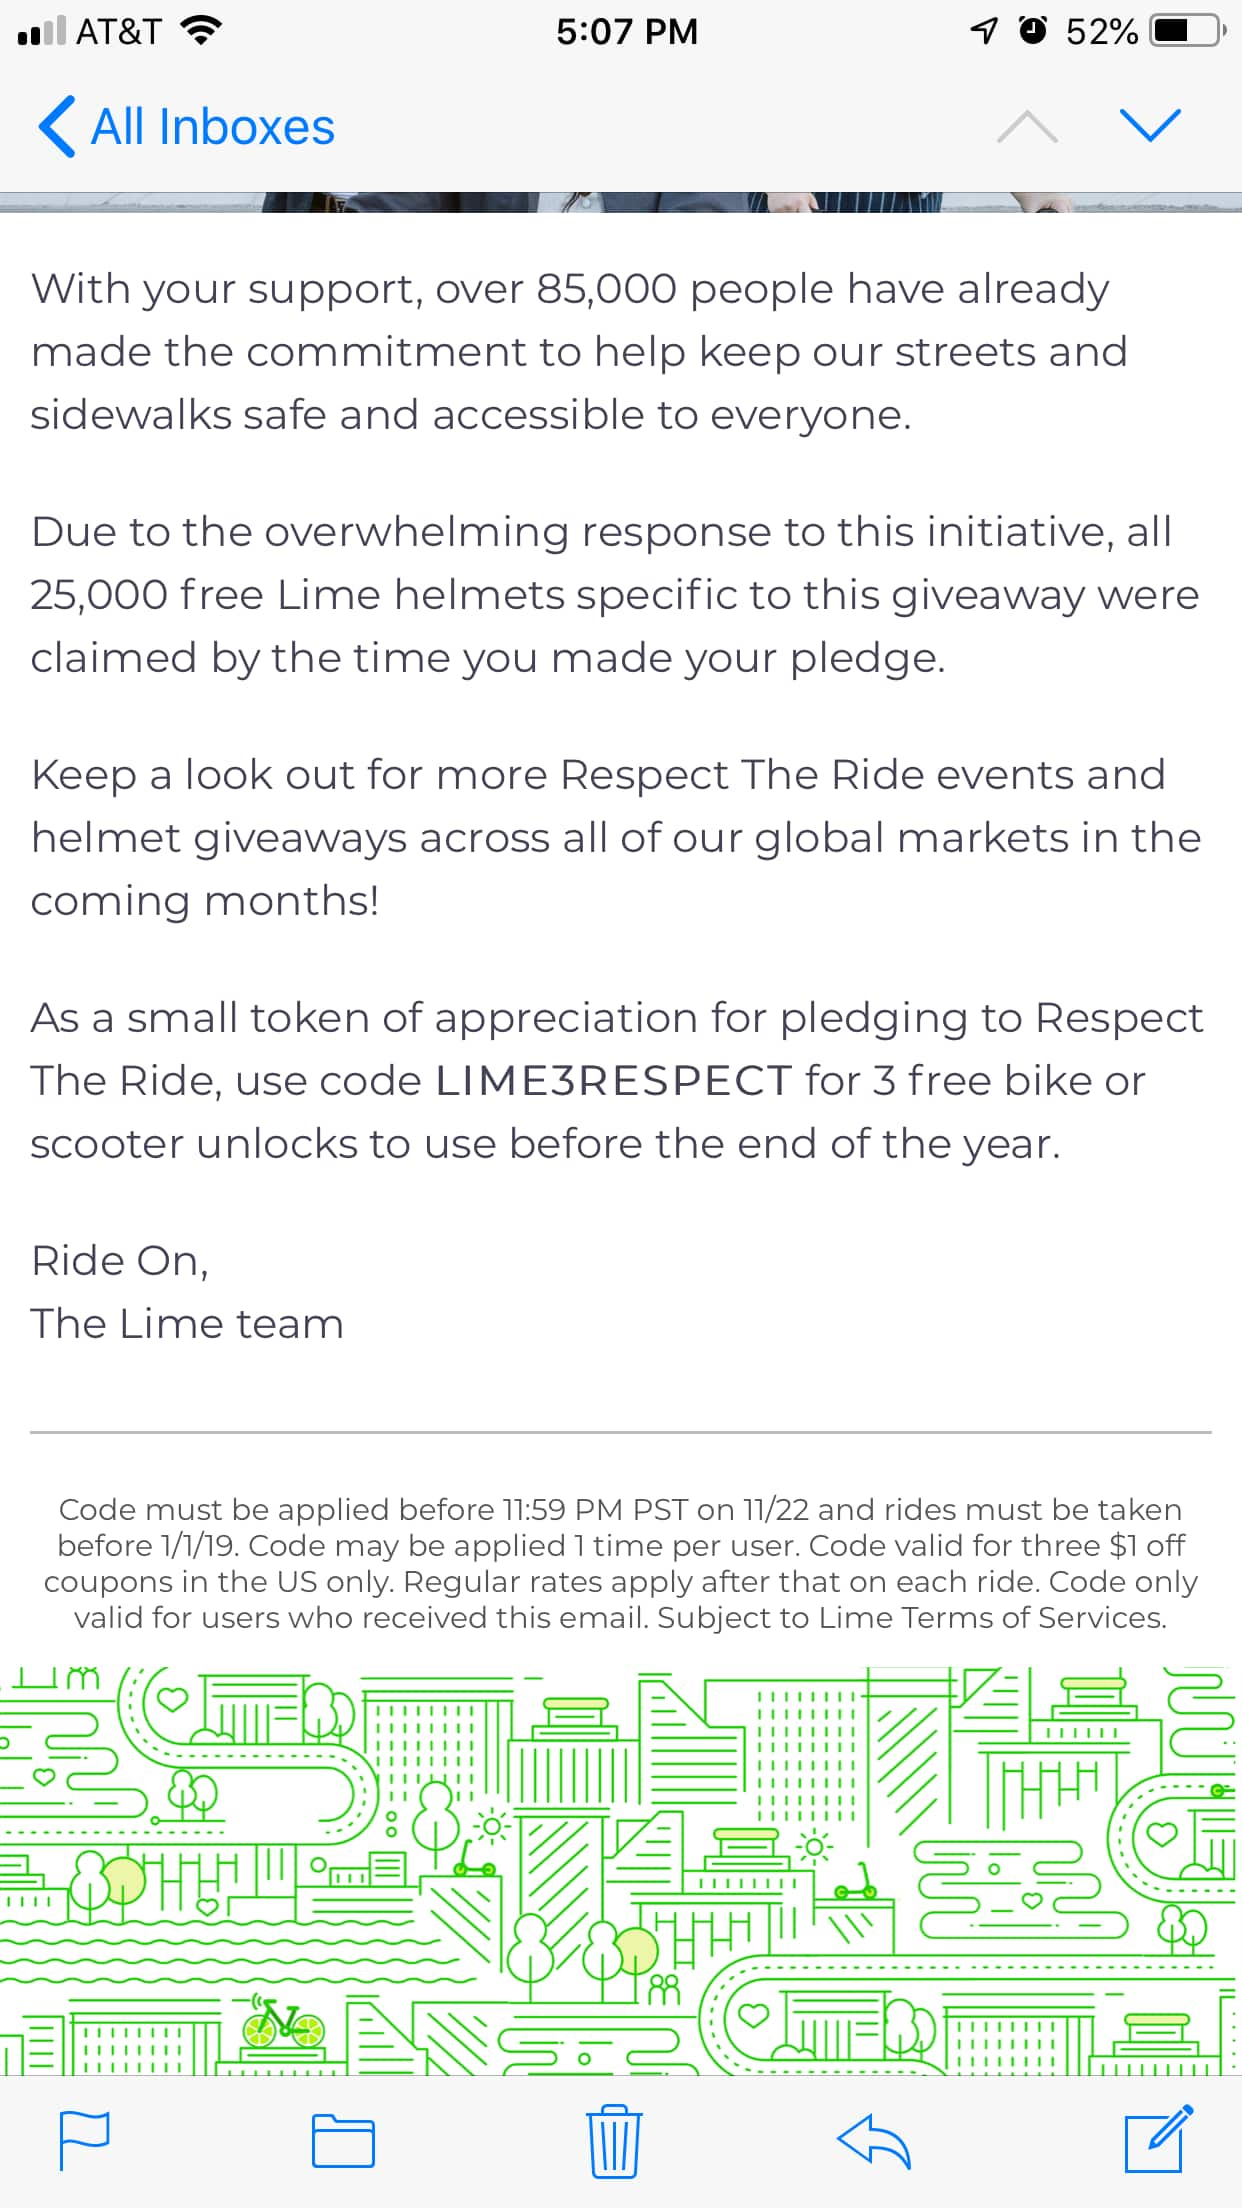 Lime scooters - get 3 free rides on or before 12/31/18